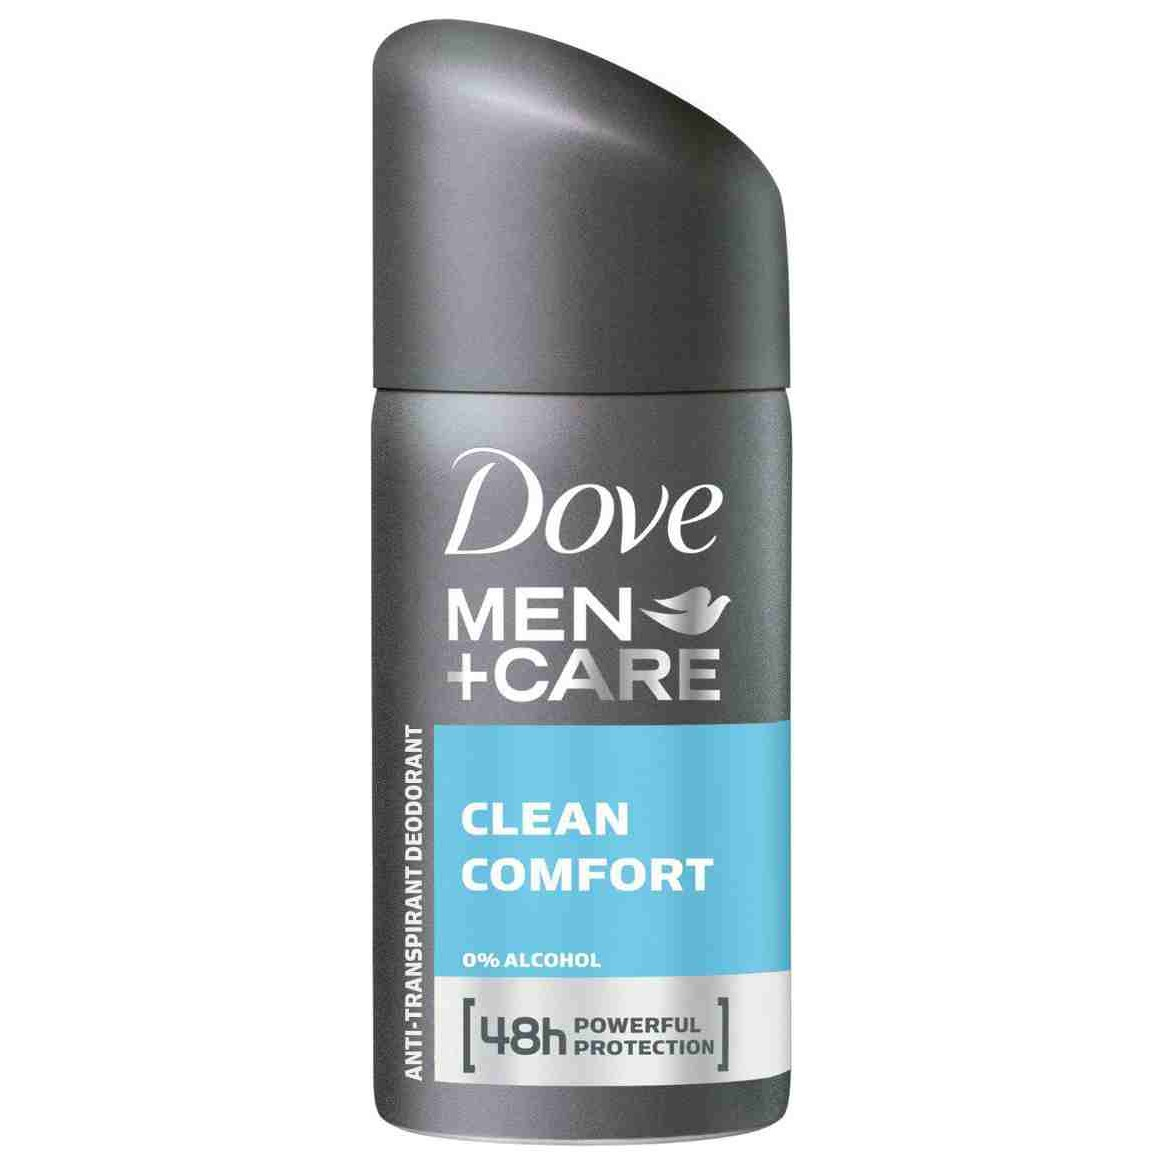 Dove desodorante for men clean comfort tamaño viaje de 35ml. en spray